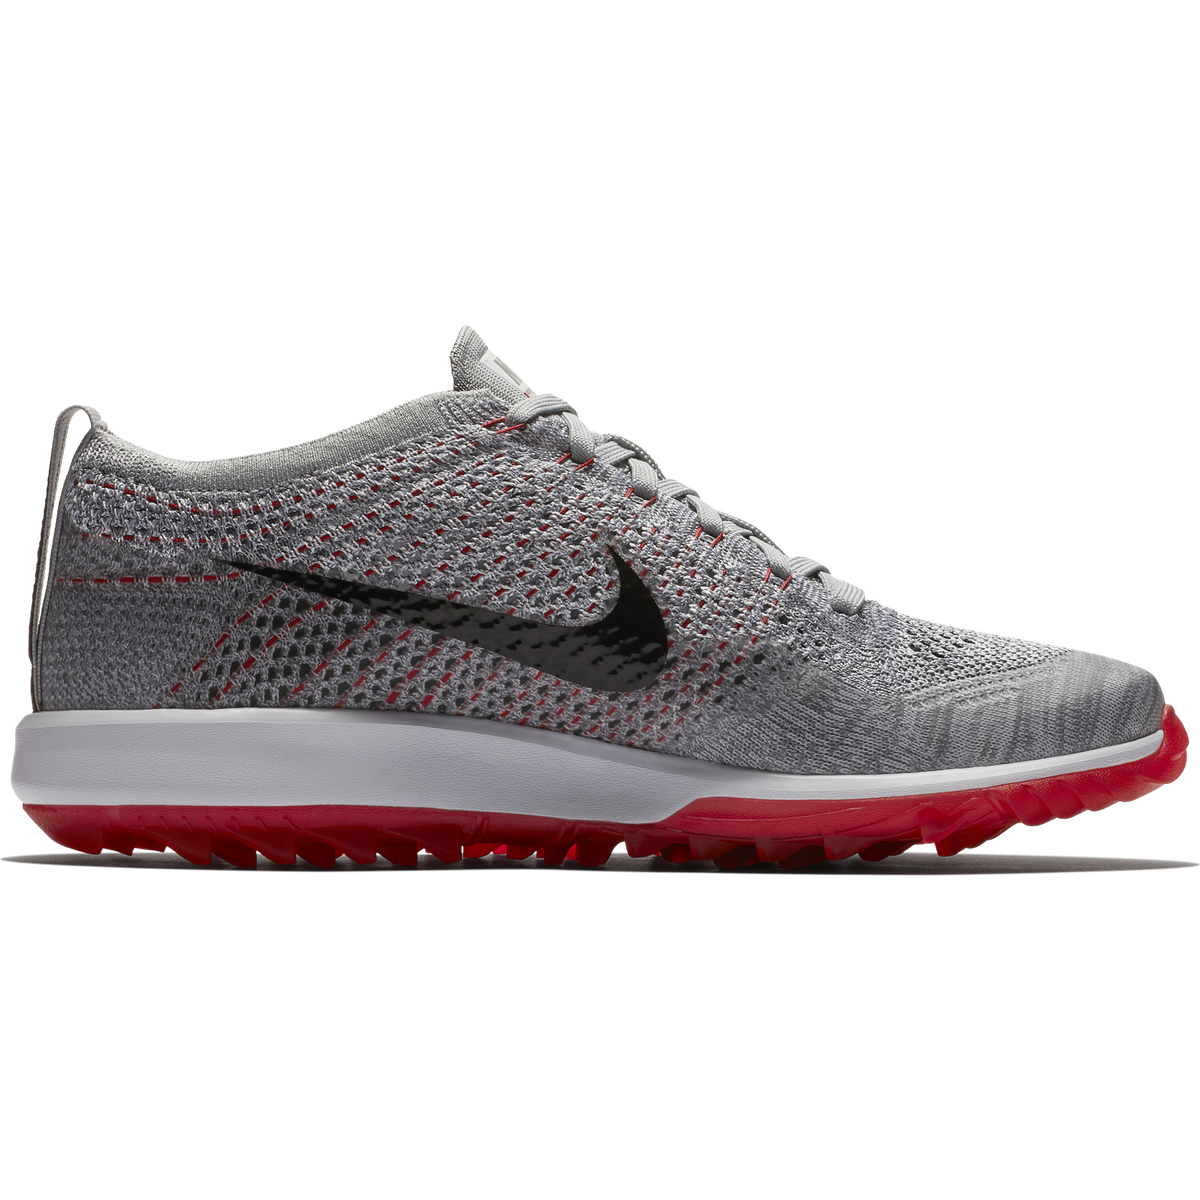 3c55d4328f06 Images. Nike Flyknit Racer G Men  39 s Golf Shoe - White Grey